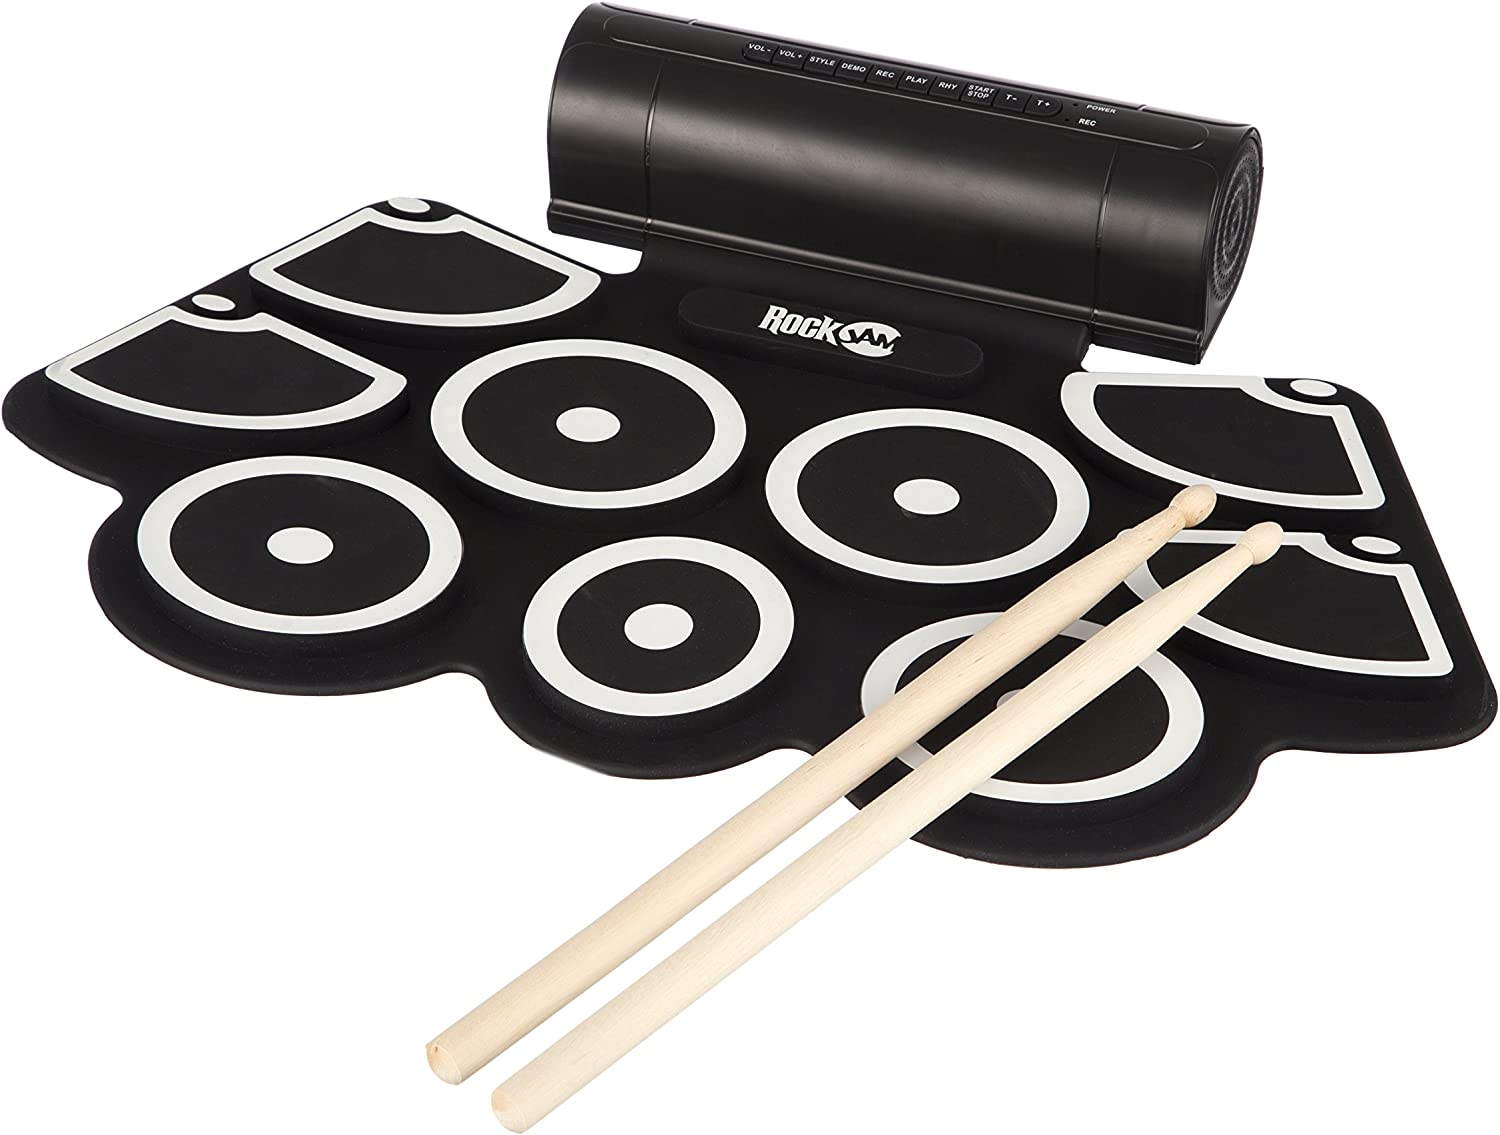 RockJam Portable MIDI Electronic Roll Up Drum Kit with Built in Speakers, Power...